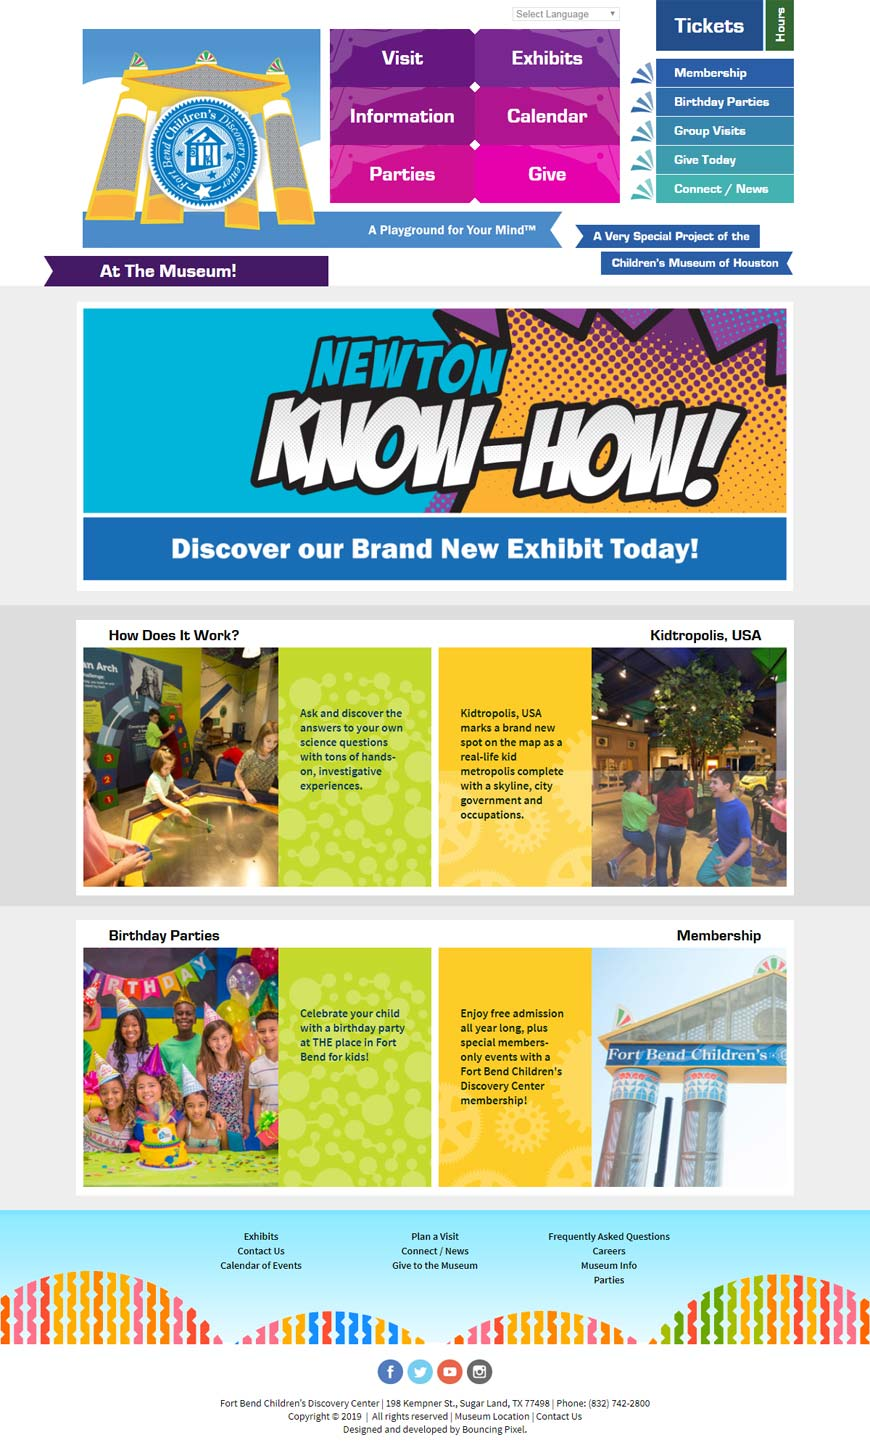 Fort Bend Children's Discovery Center Home Page